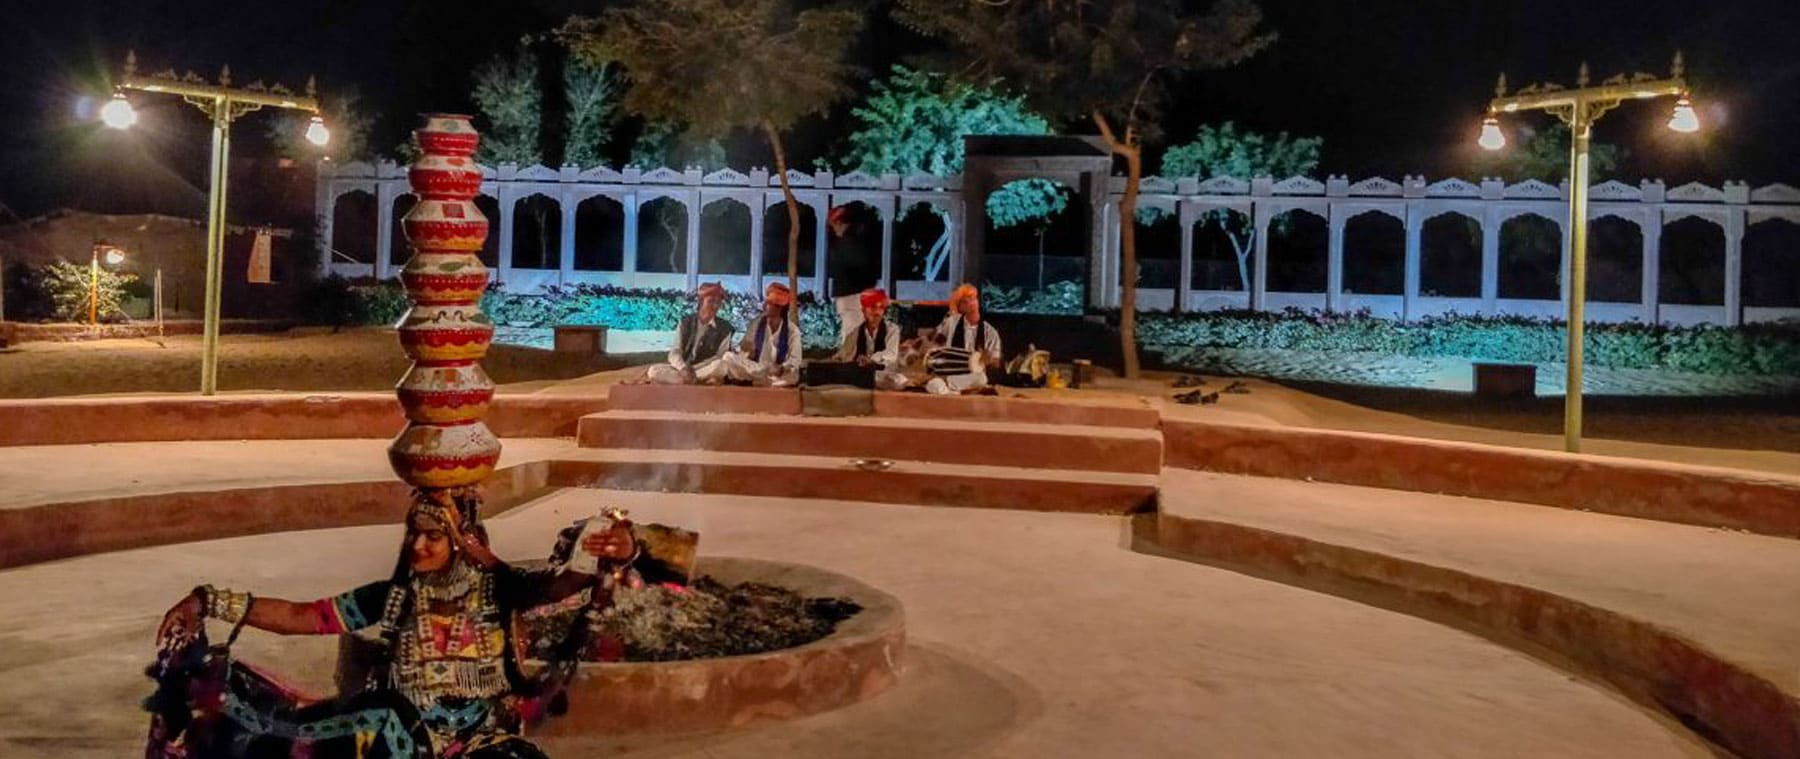 Traditional Music & Dance of Rajasthan at  osian desert resort.